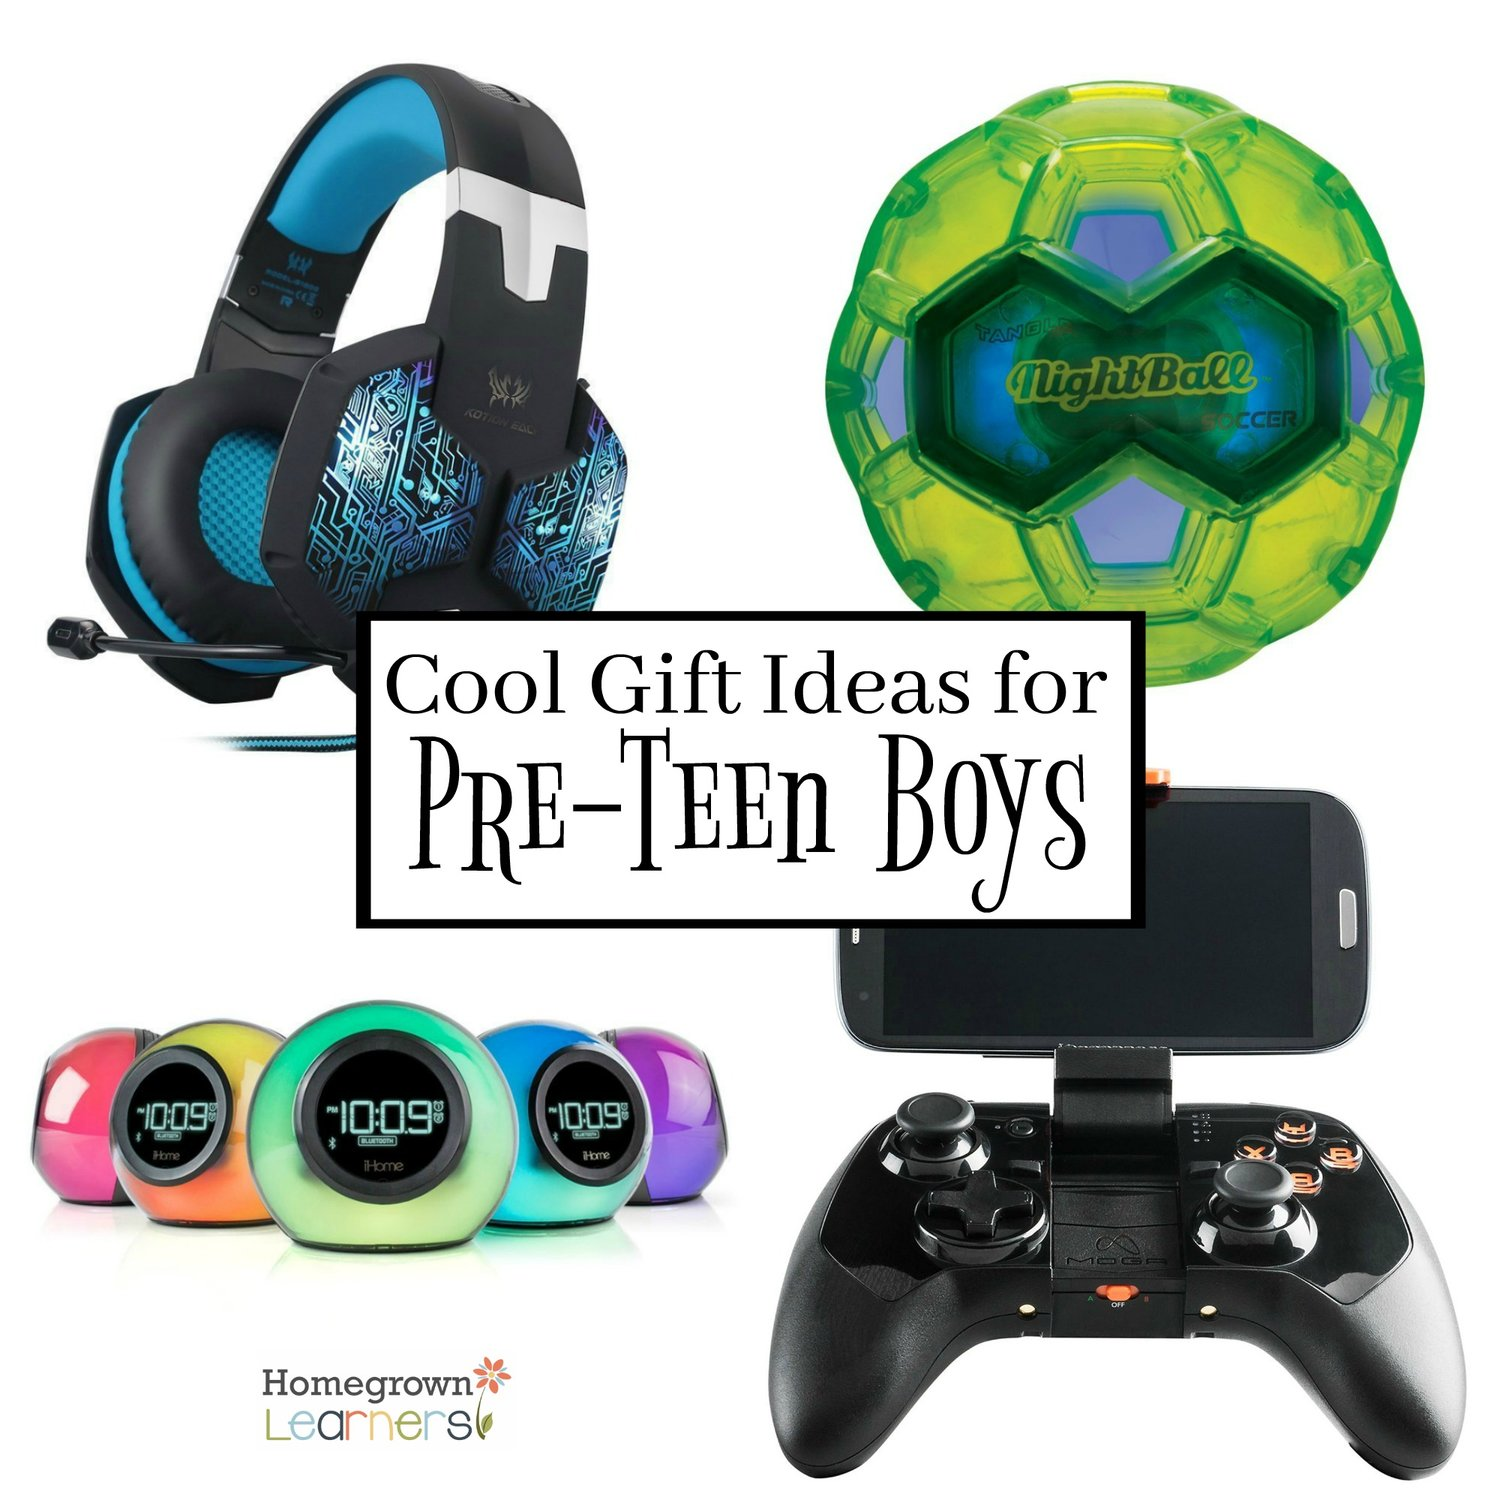 Cool Gift Ideas for Pre-Teen Boys — Homegrown Learners